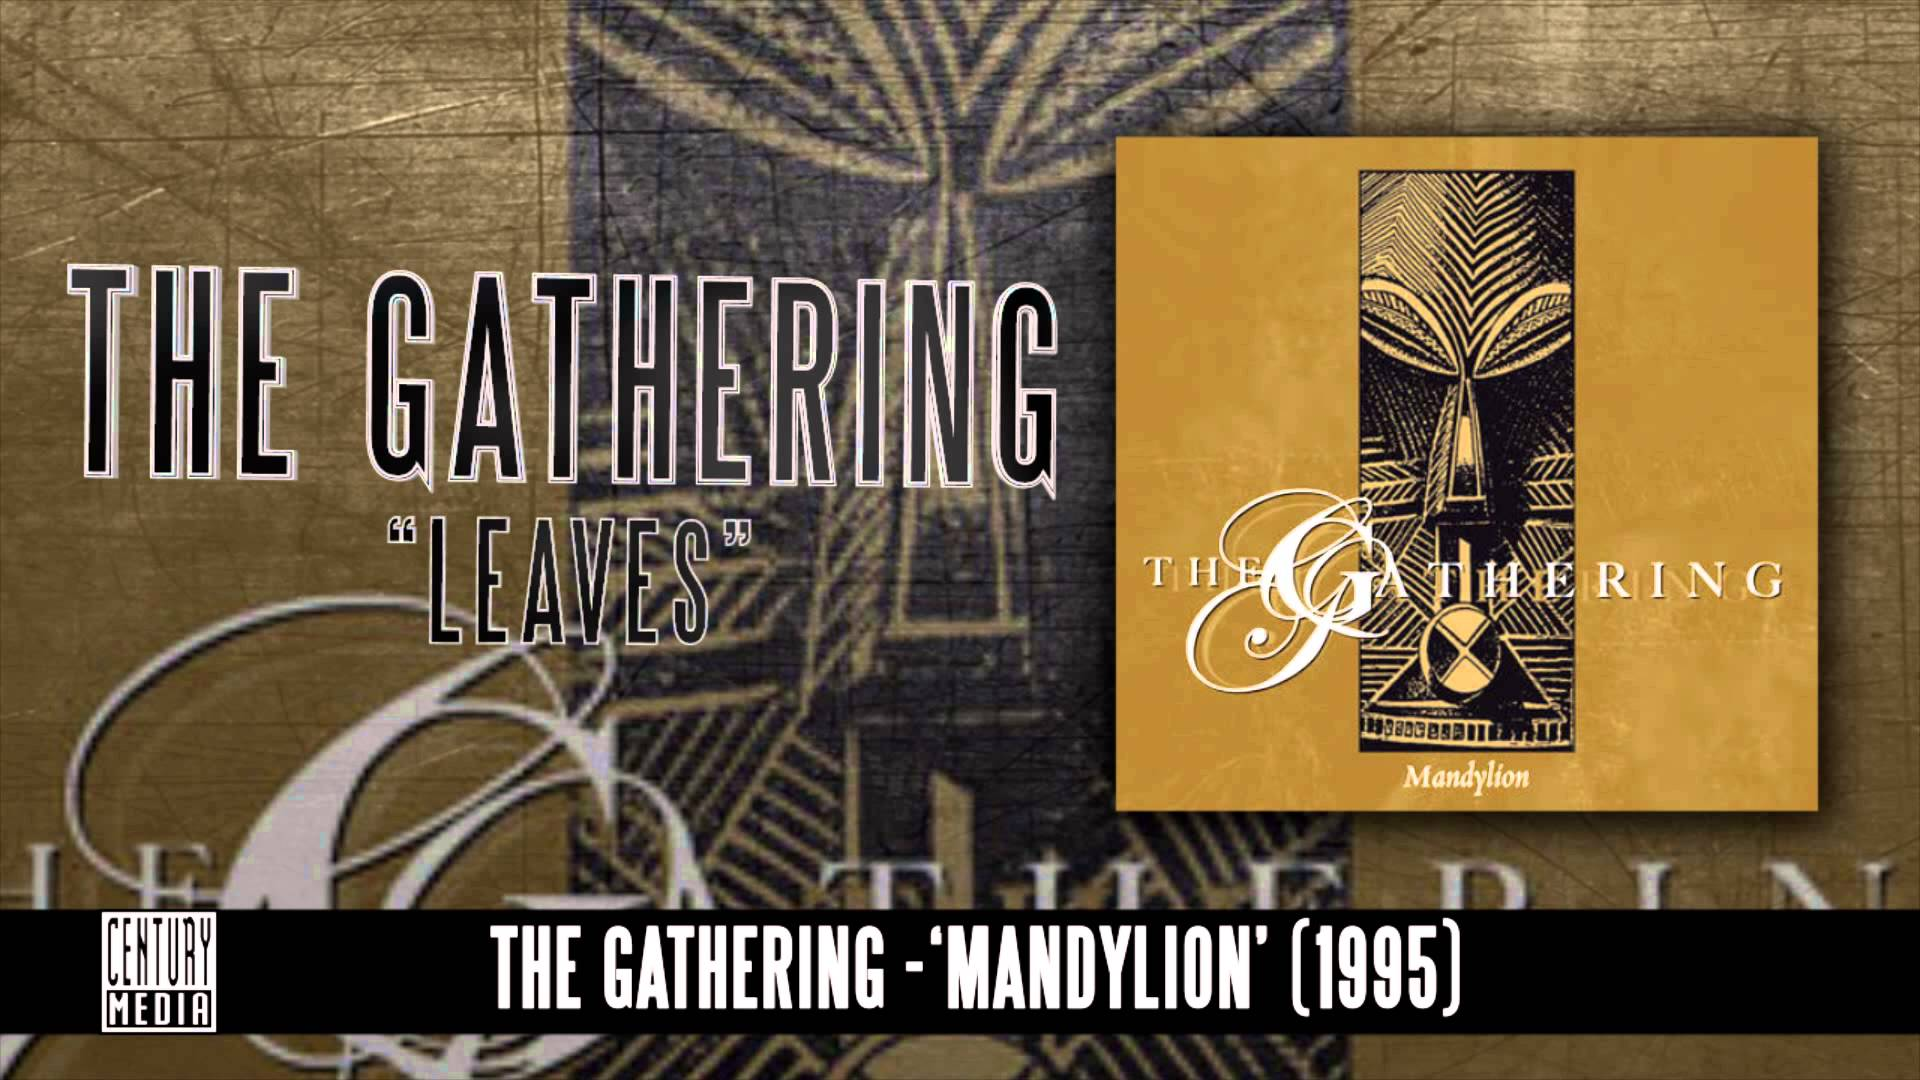 THE GATHERING - Leaves (Album Track)